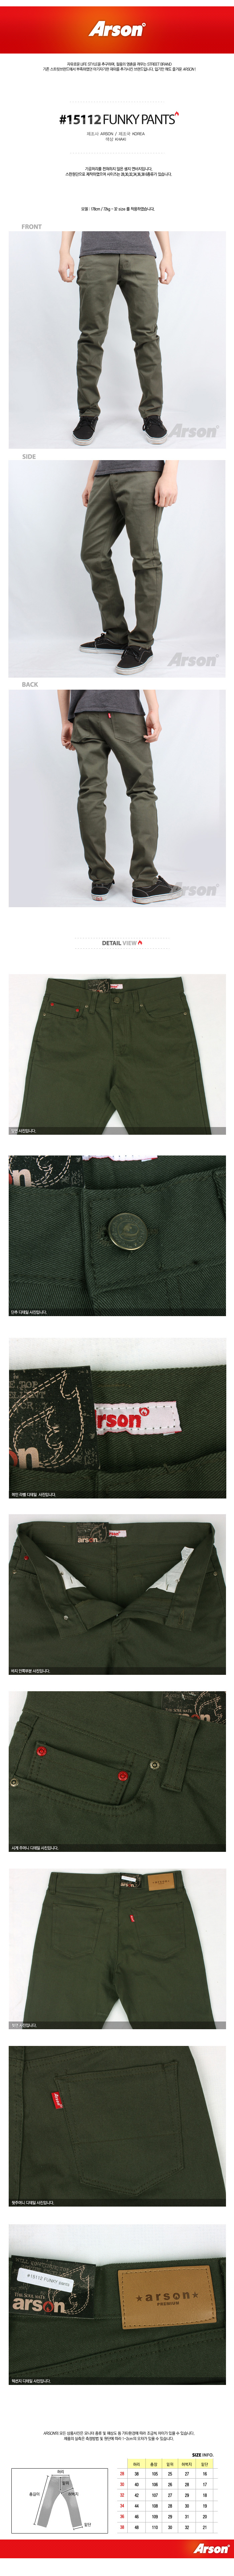 [ ARSON ] [Arson] ARSON GENUINE/15112 FUNKY PANTS (KHAKI)/men\'s cotton pants/cotton pants/ARSON cotton pants/pants